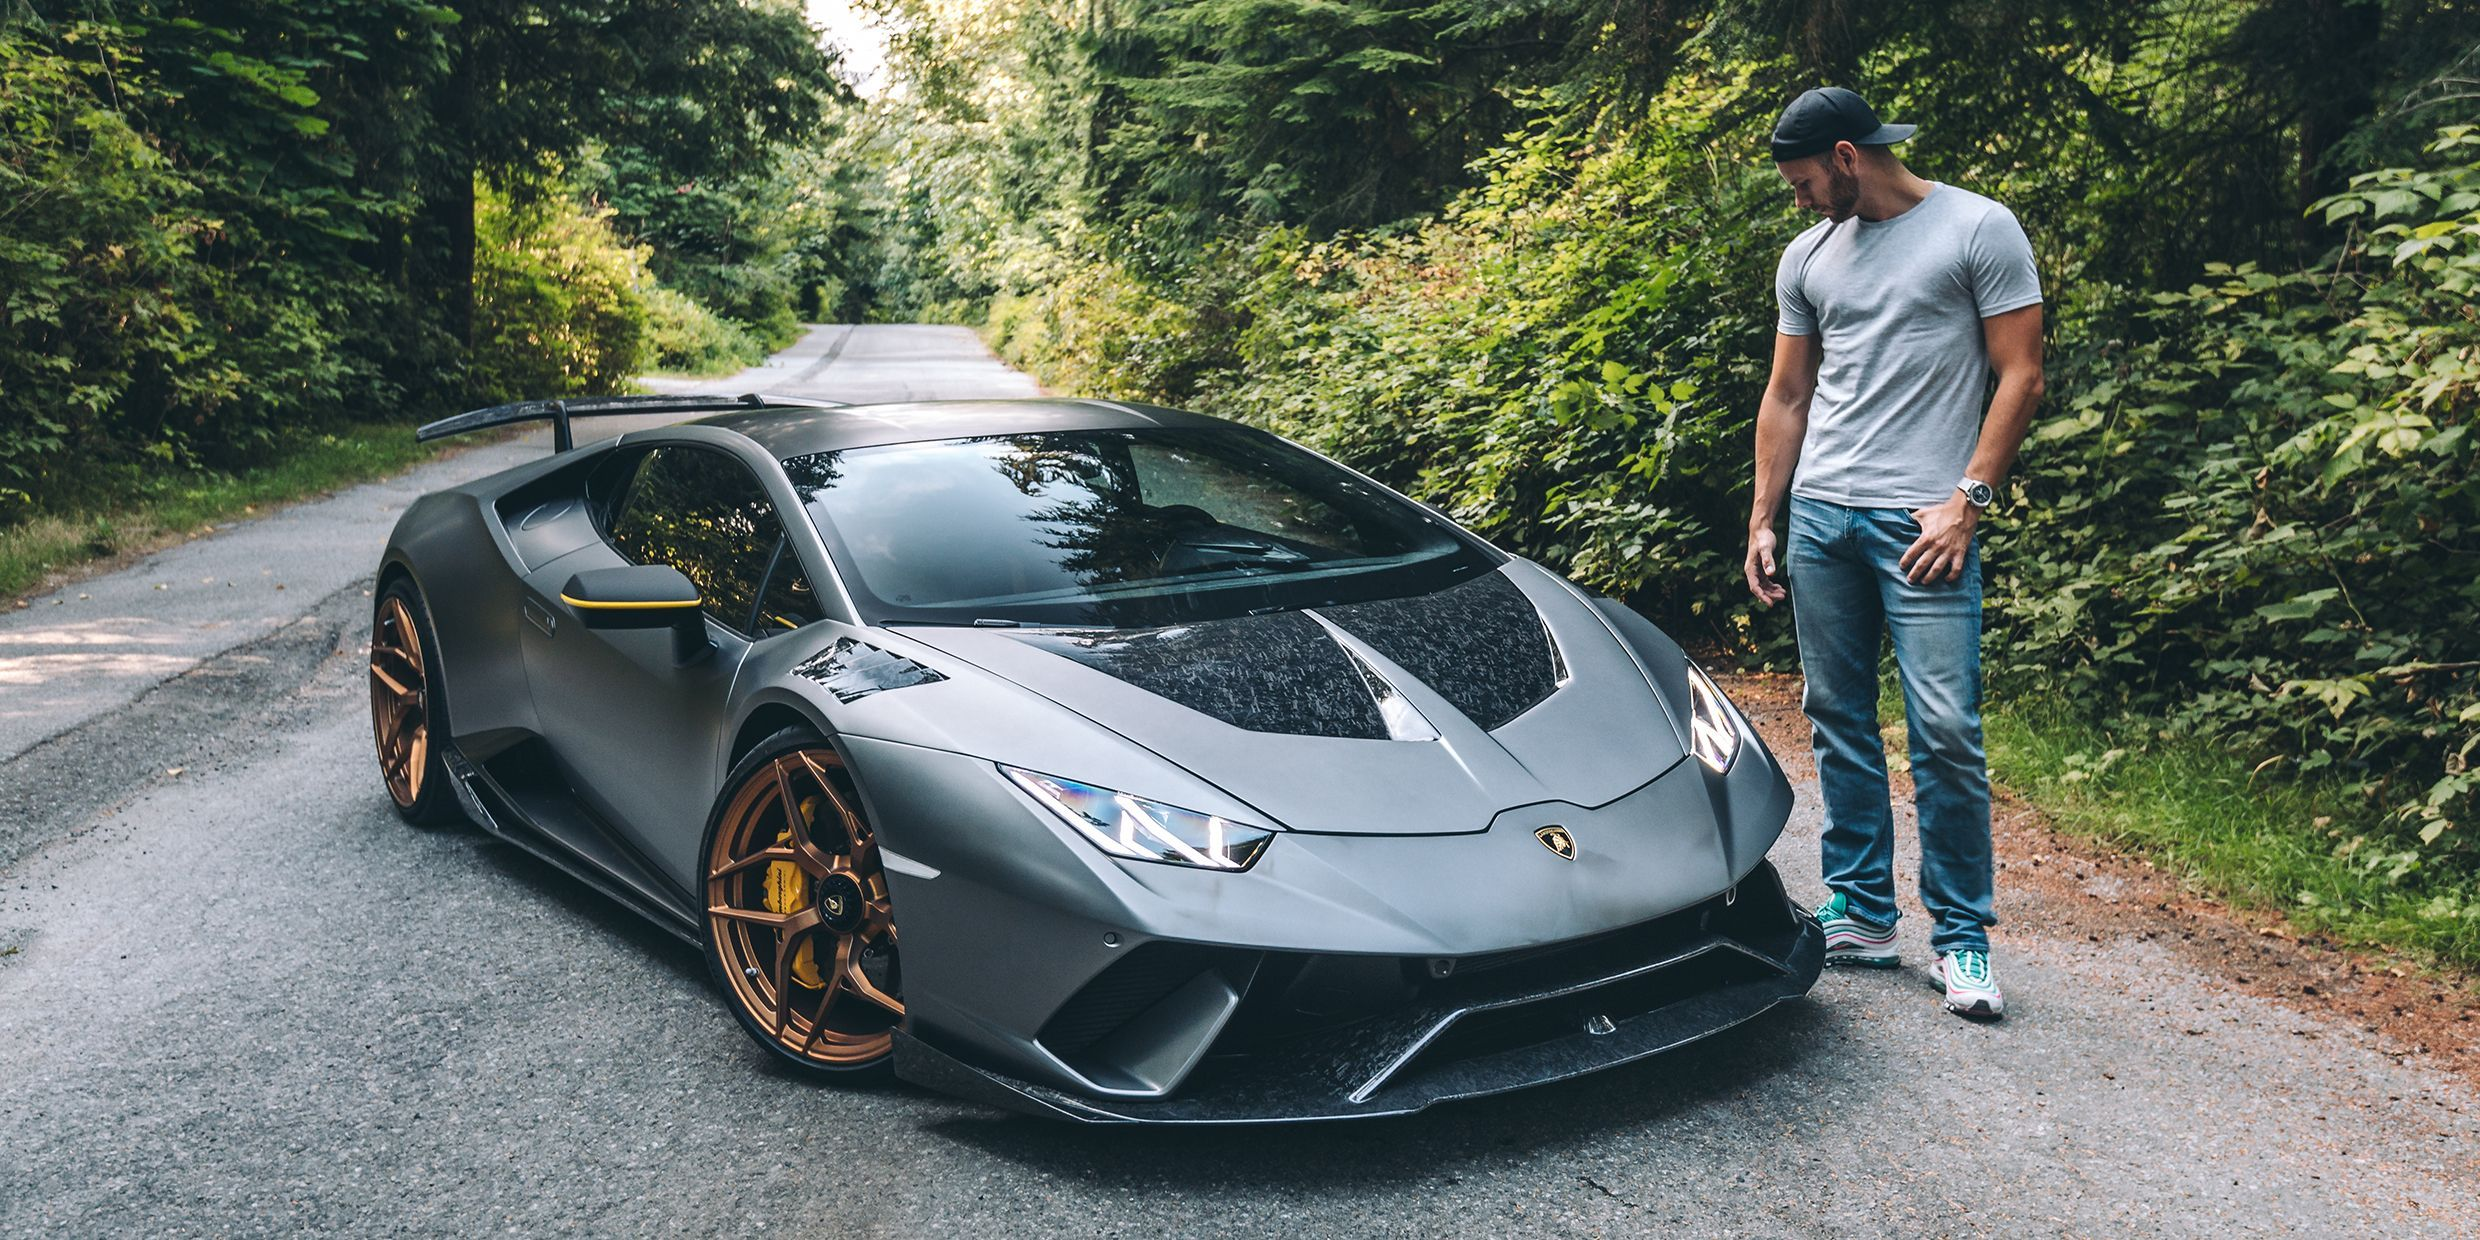 An Inspiring Story And An Inspired Supercar Lamborghini Huracan Lamborghini Huracan Price Super Cars